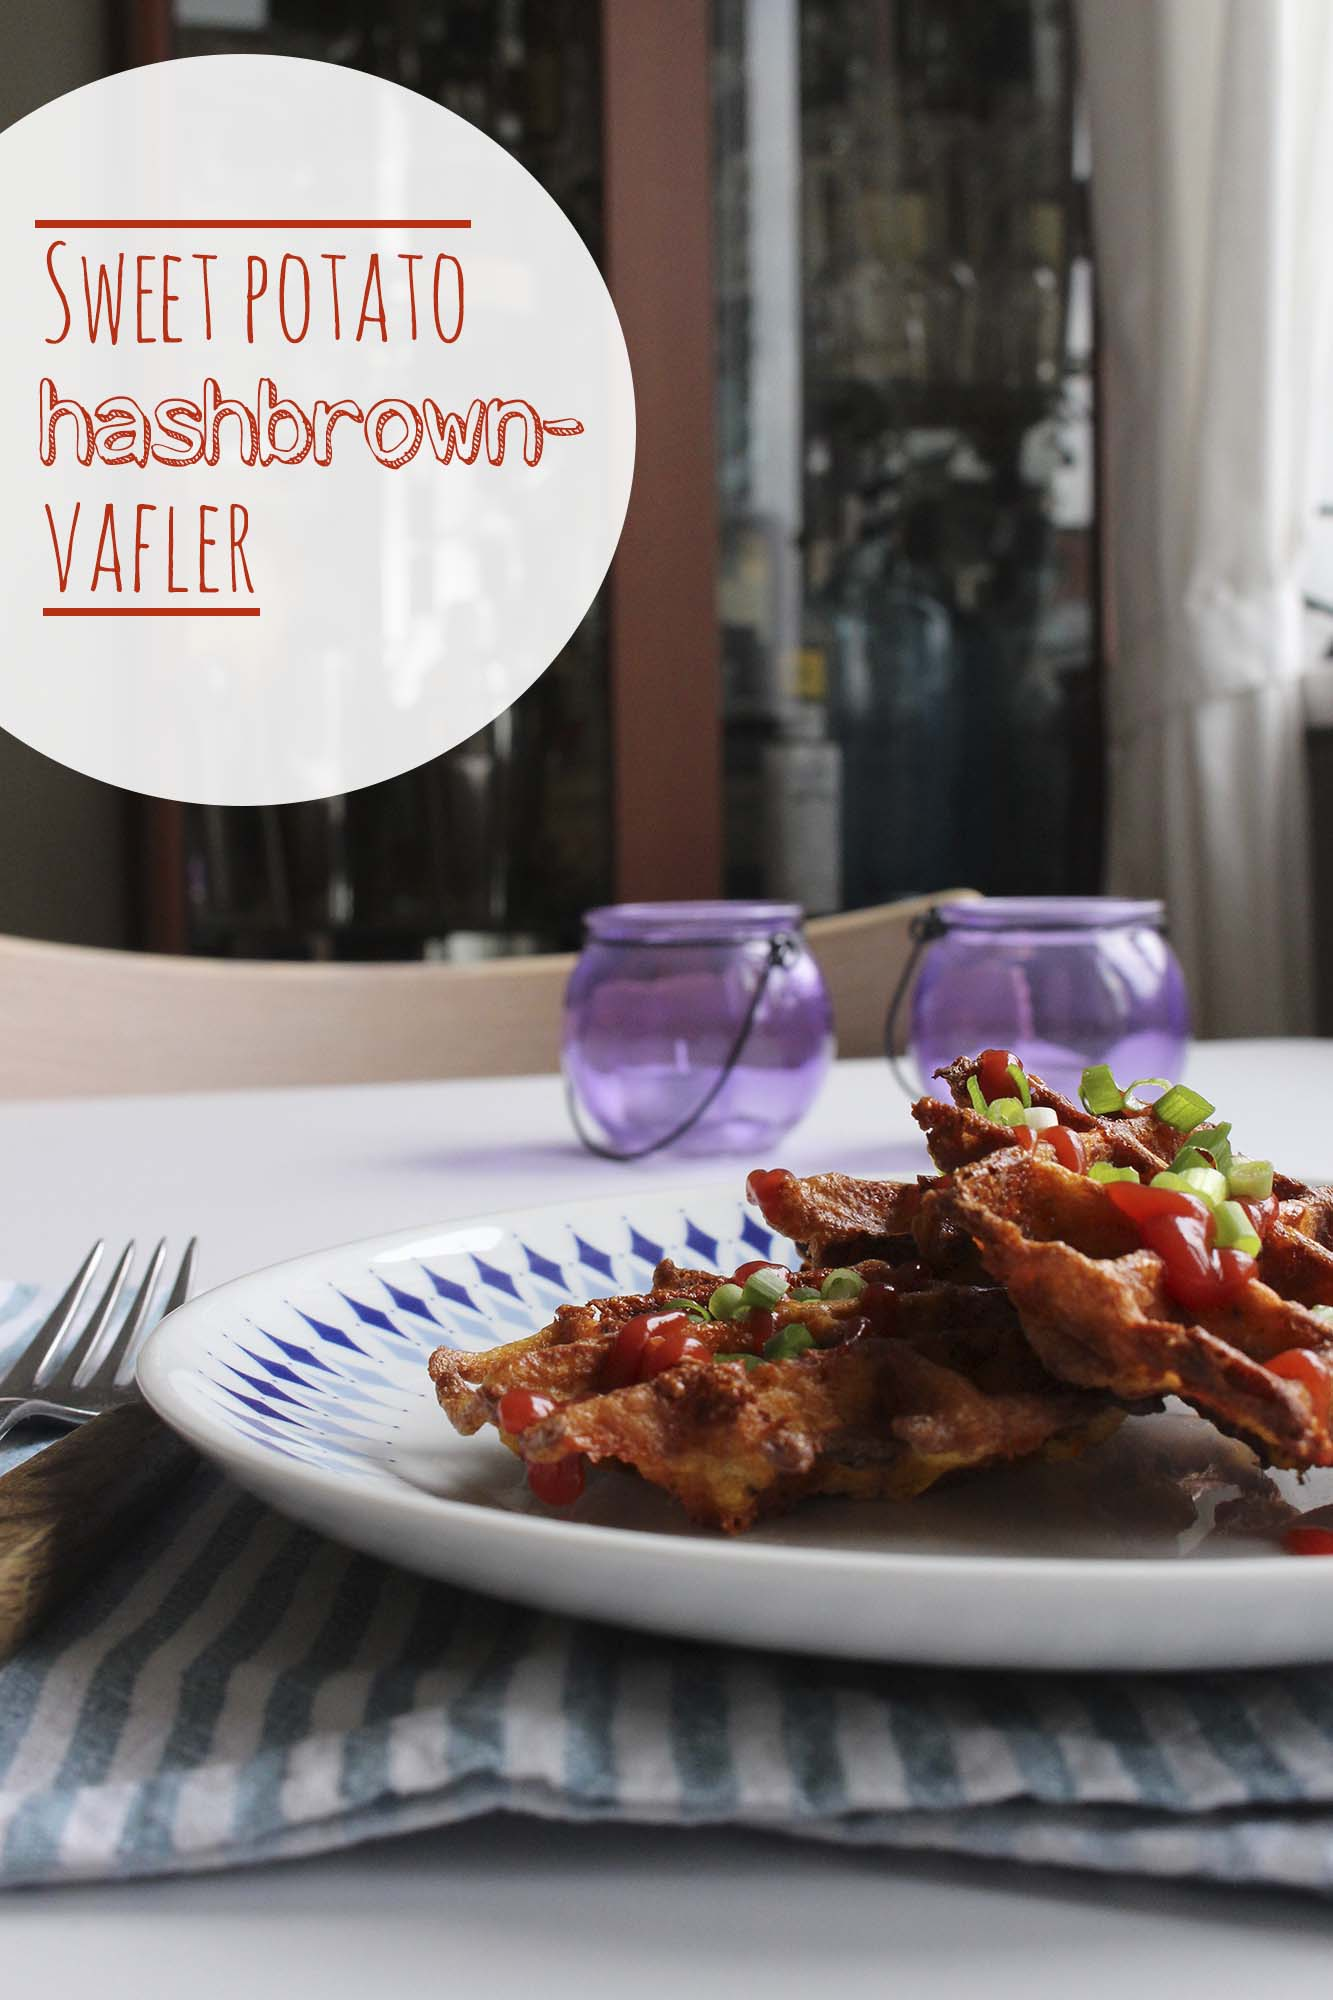 Sweet potato hashbrown vafler